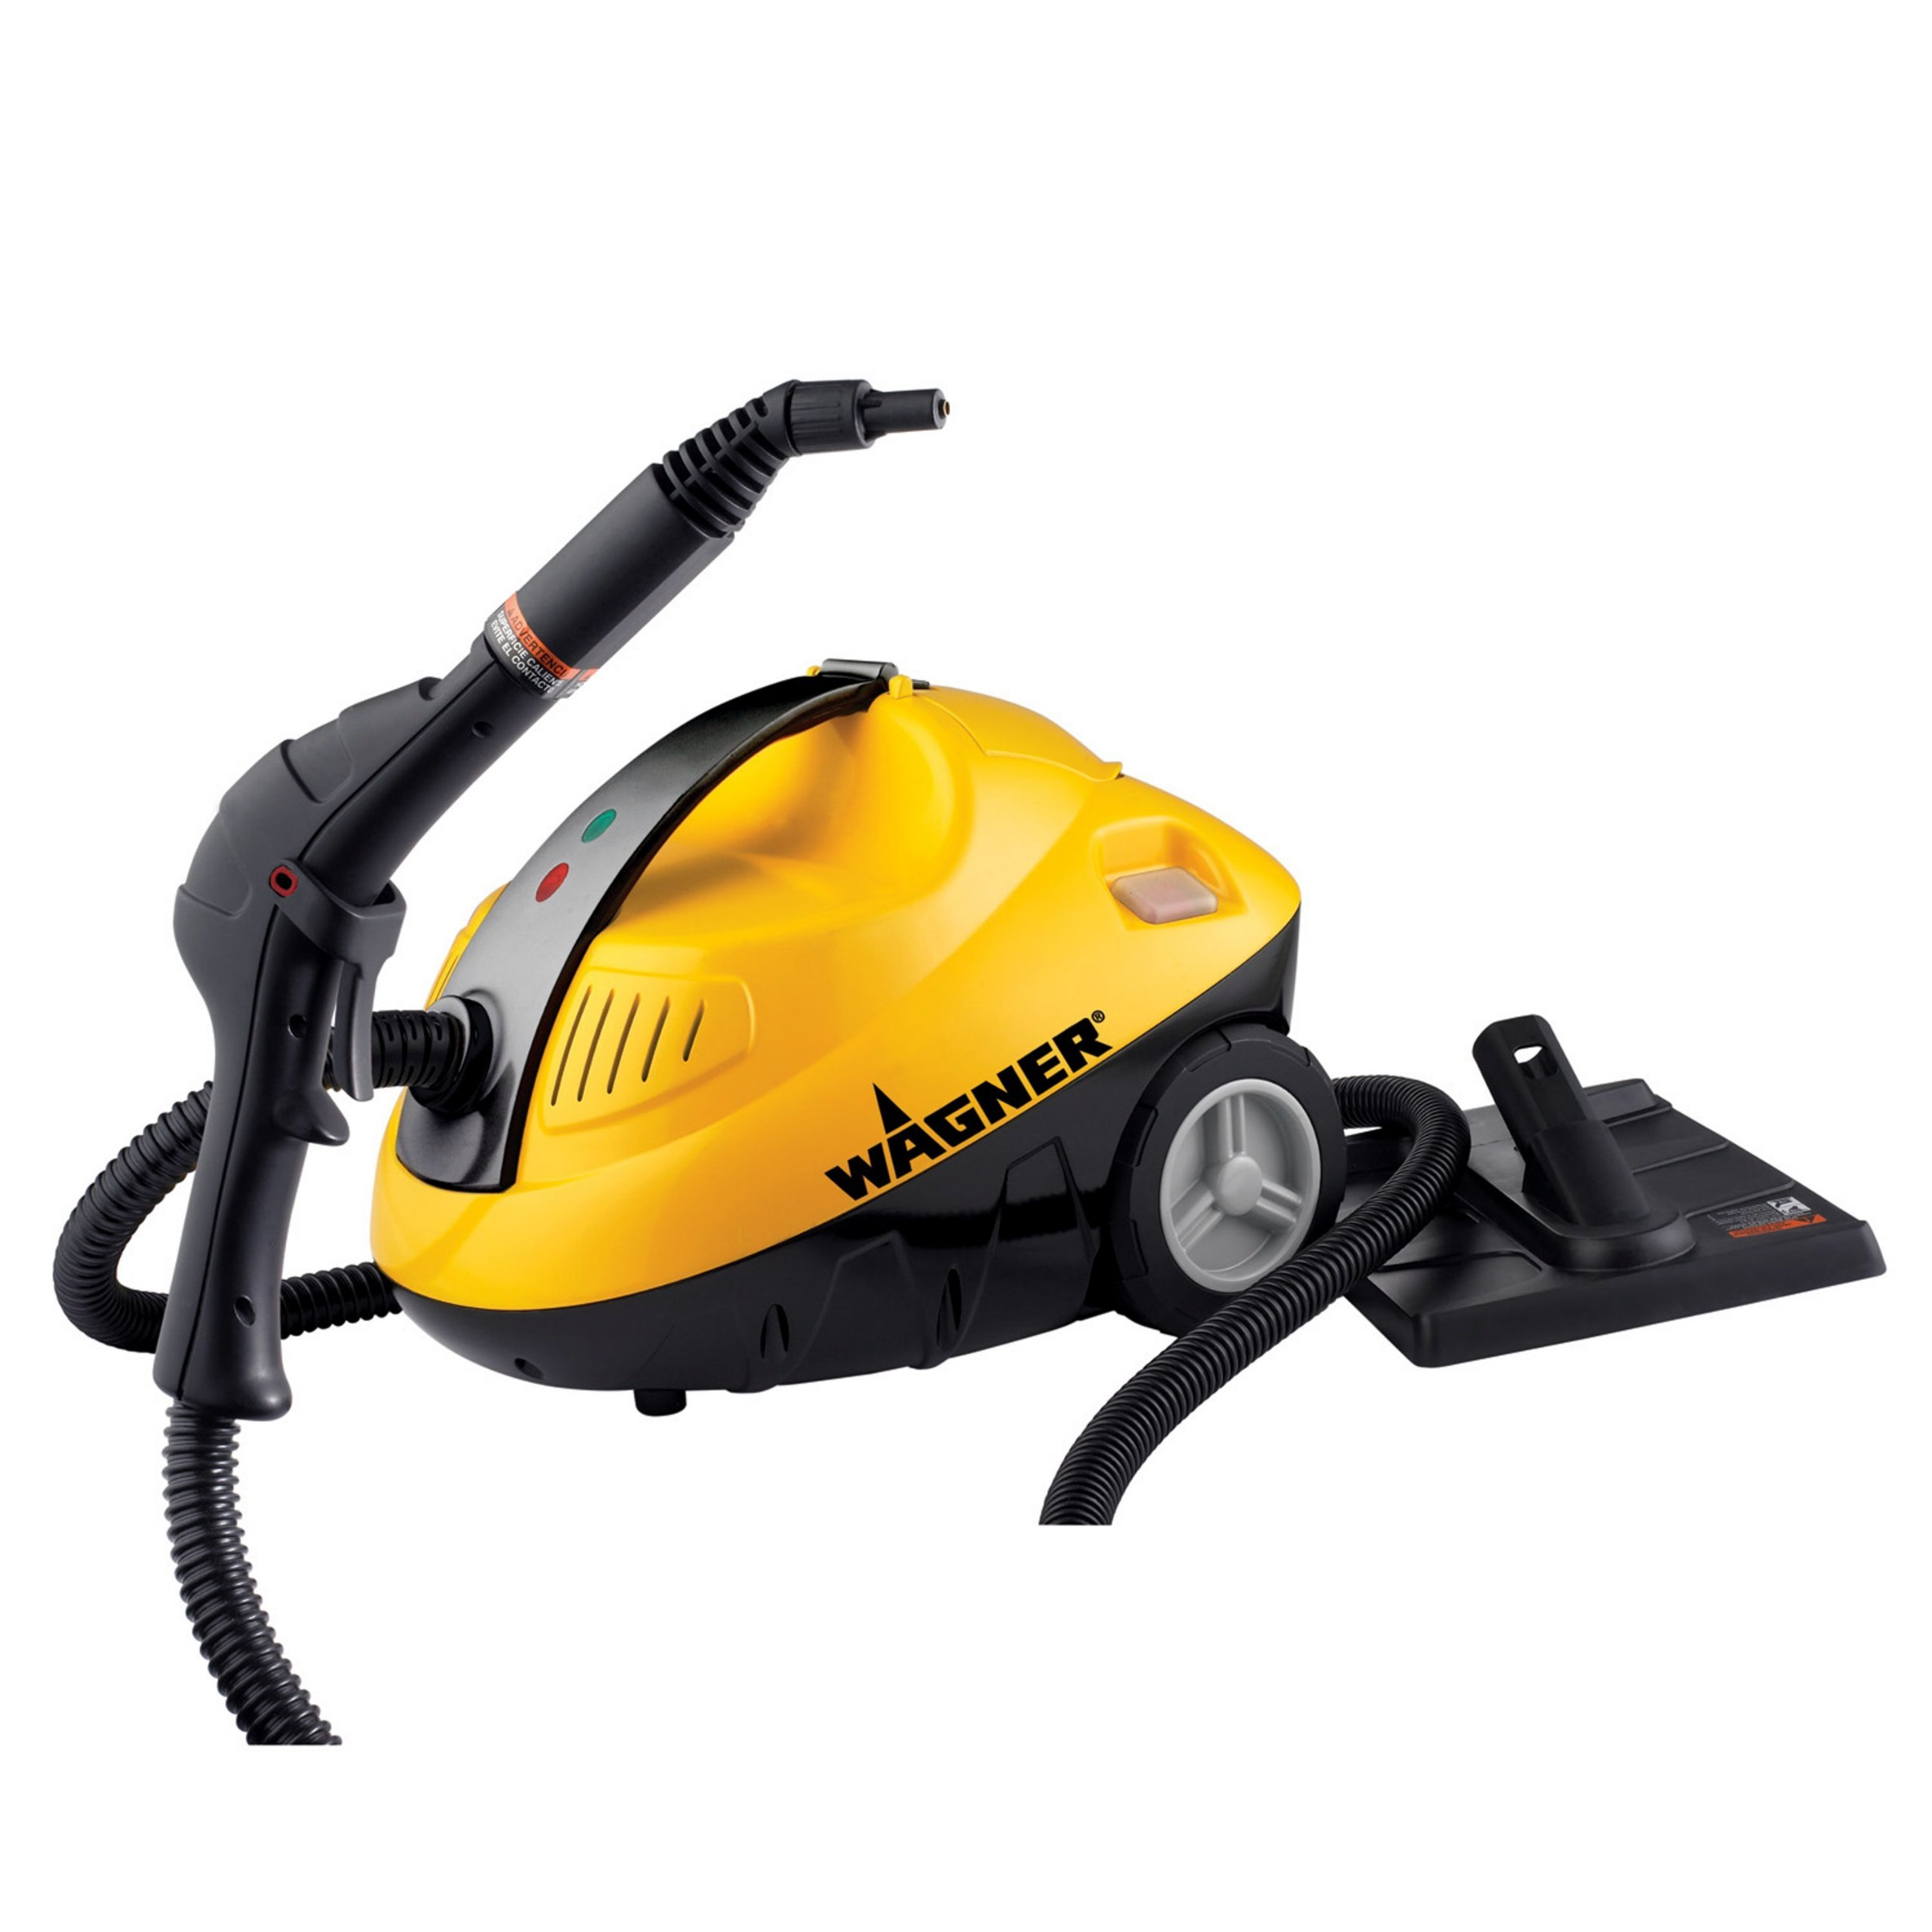 Wagner Spraytech Wagner 0282014 915 On-Demand Steam Cleaner, 120 Volts, 1-(Pack), Yellow (Renewed) by Wagner Spraytech